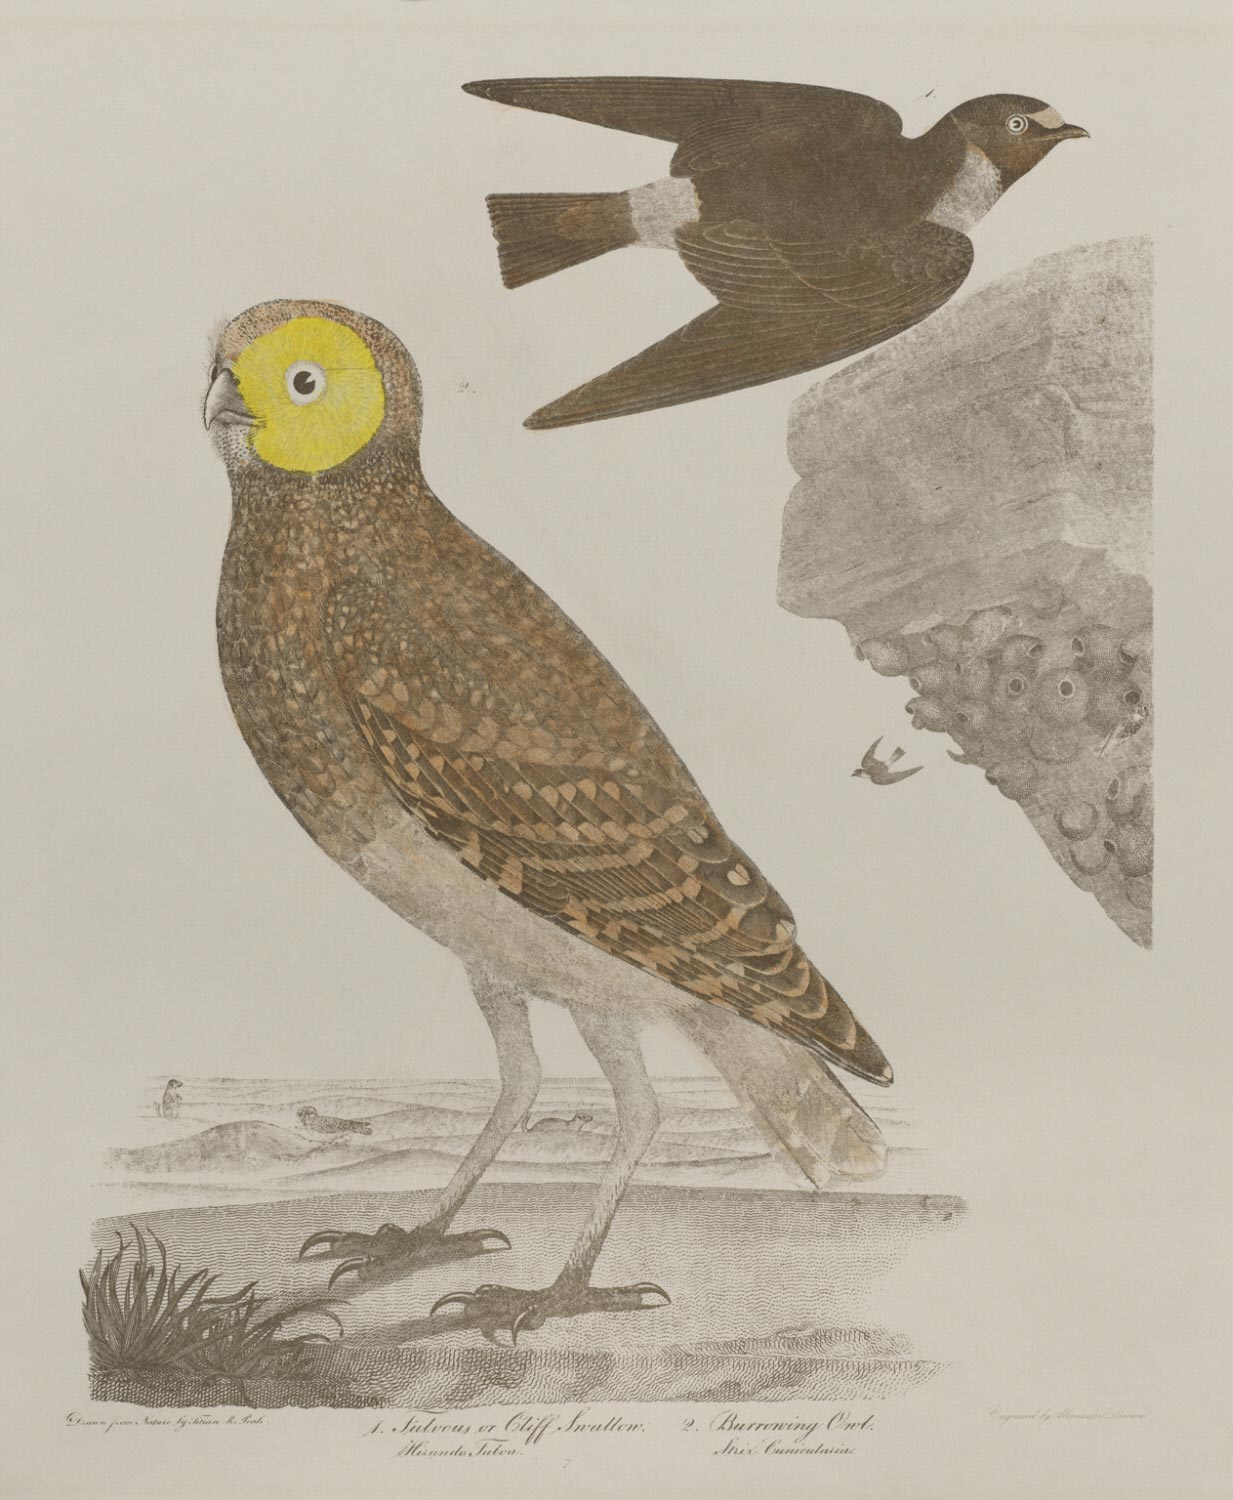 Fulvous or Cliff Swallow, Burrowing Owl